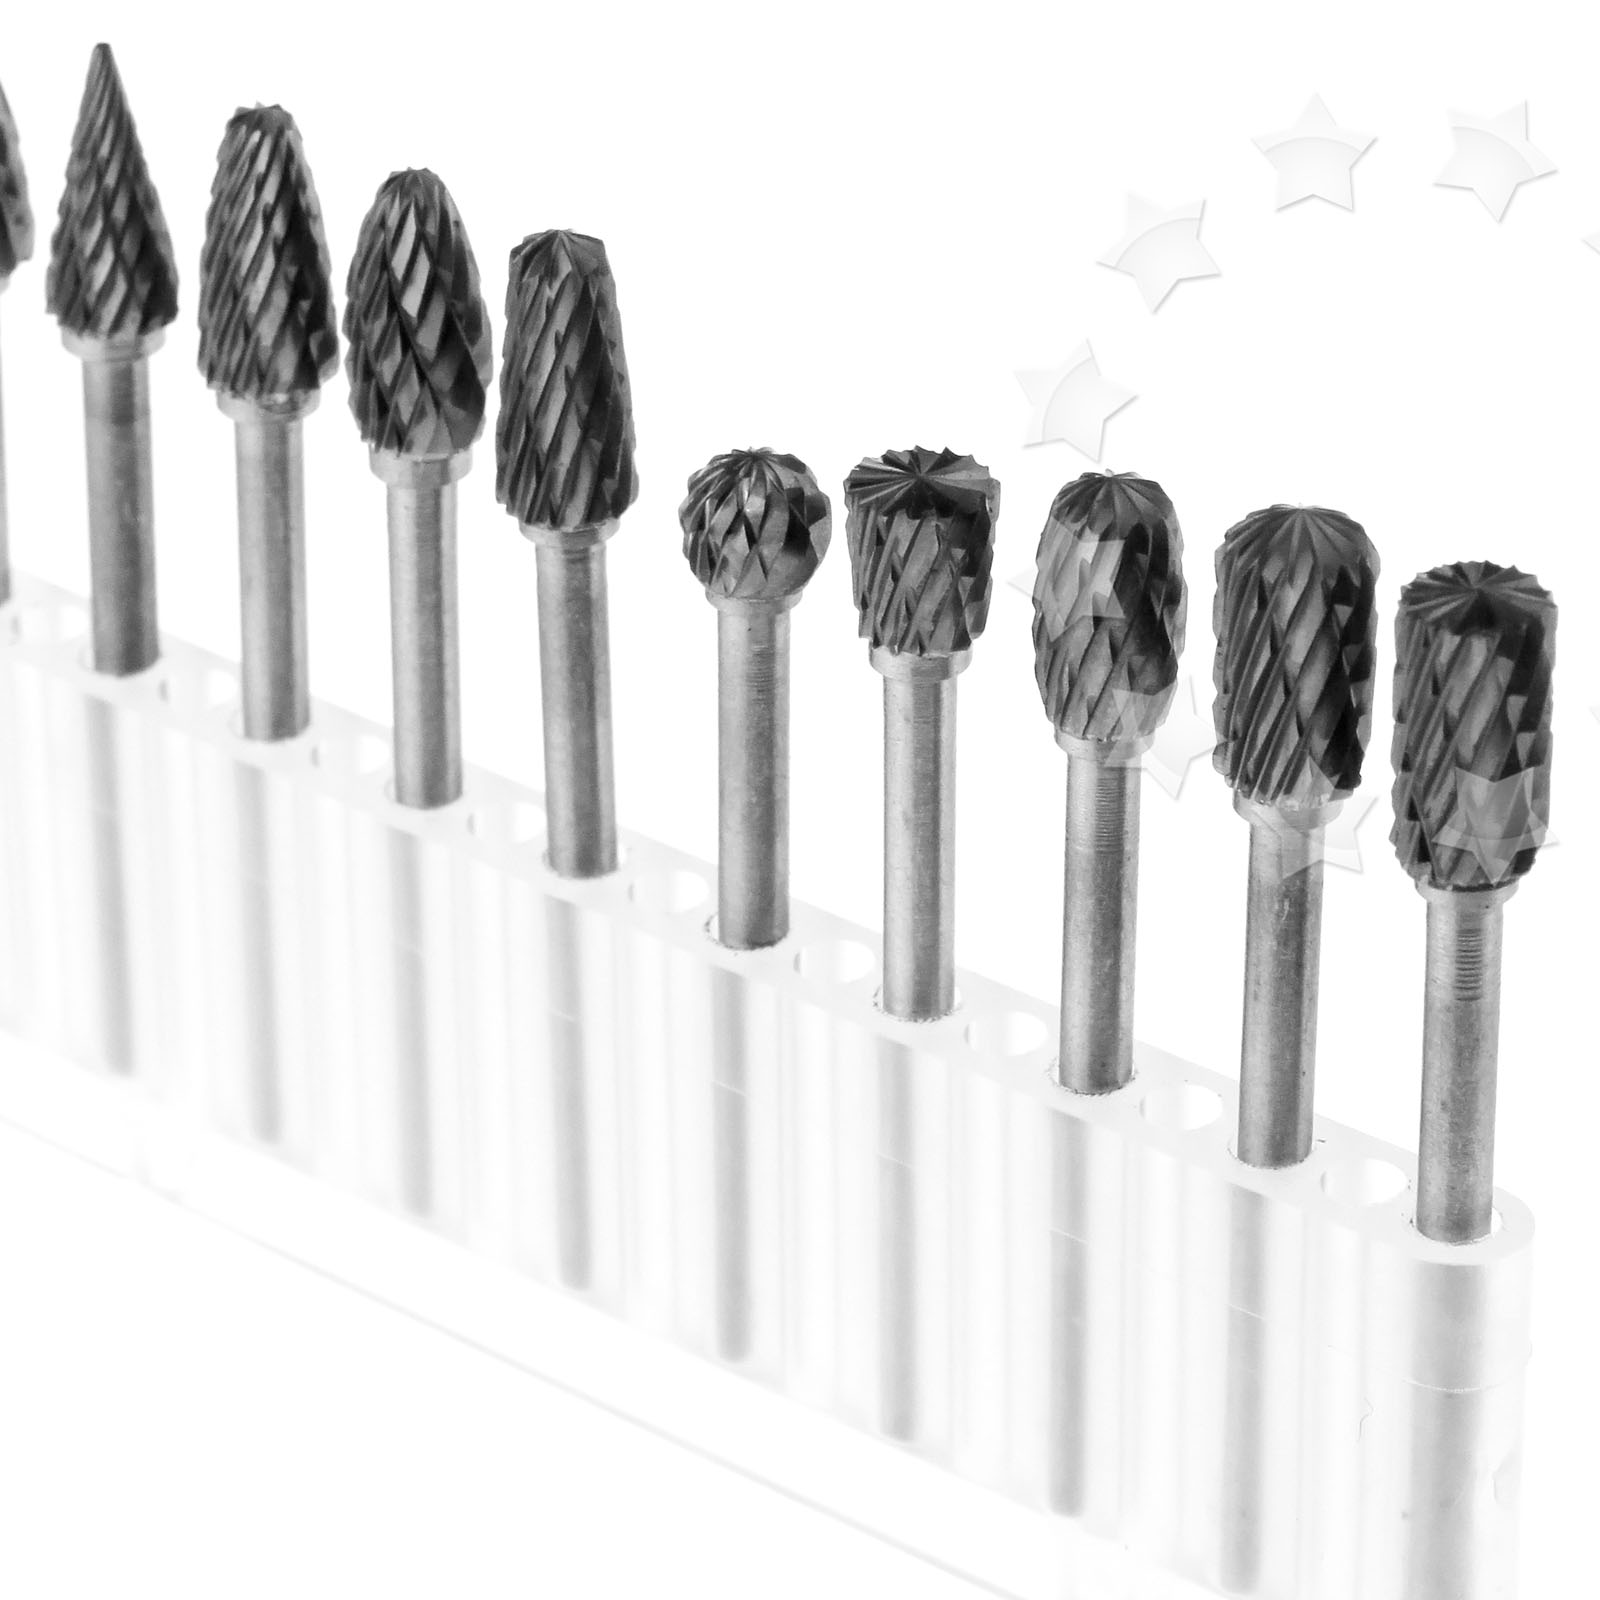 10x Tungsten 3mmx6mm Head Carbide Burrs Dremel Rotary Tool